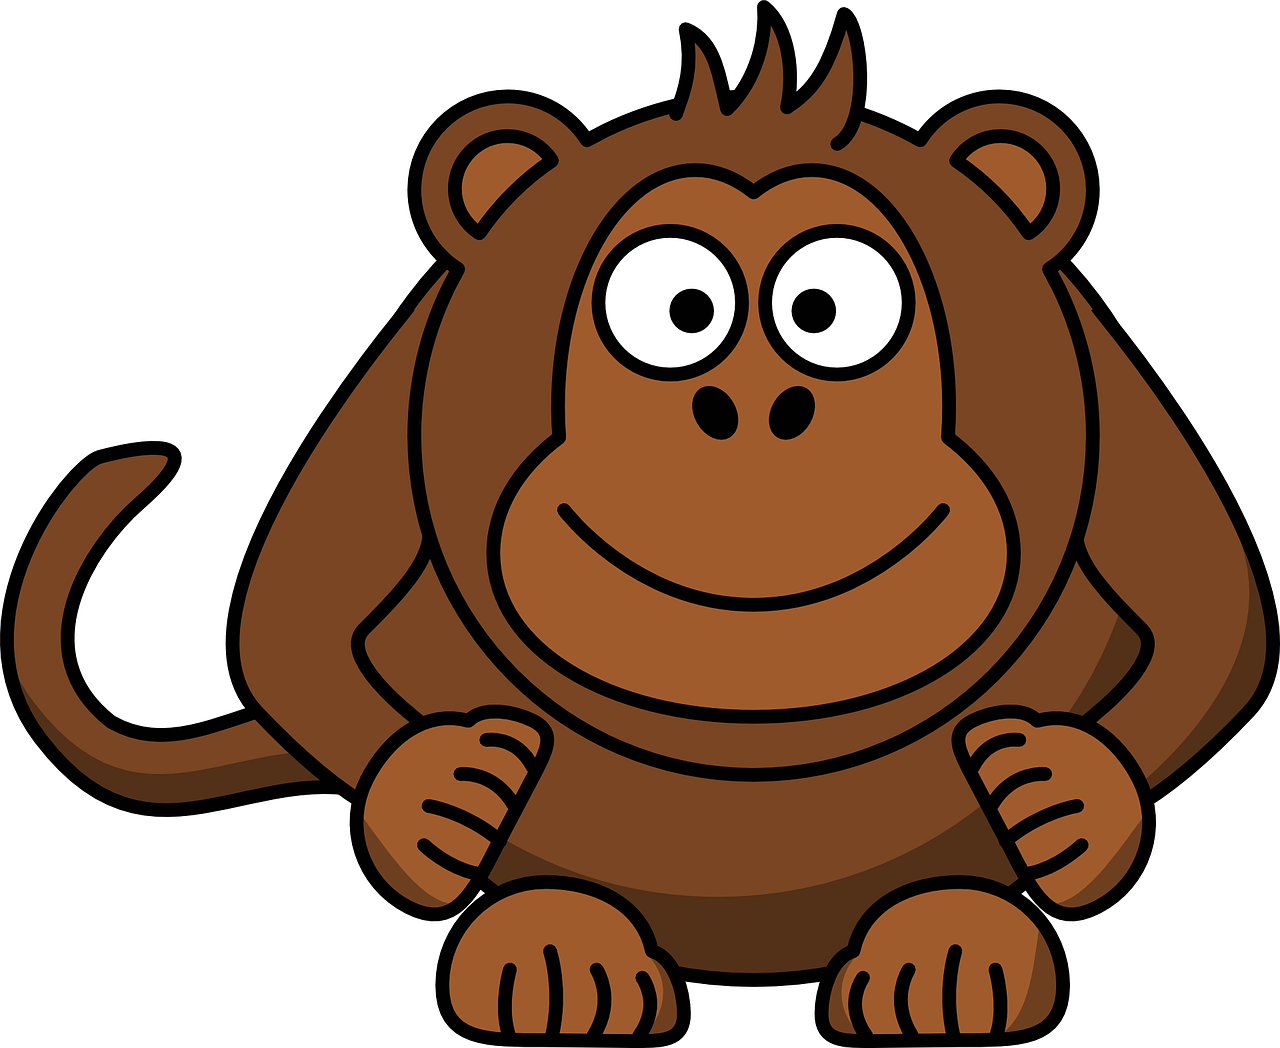 Costume clipart monkey. For dogs cute flying